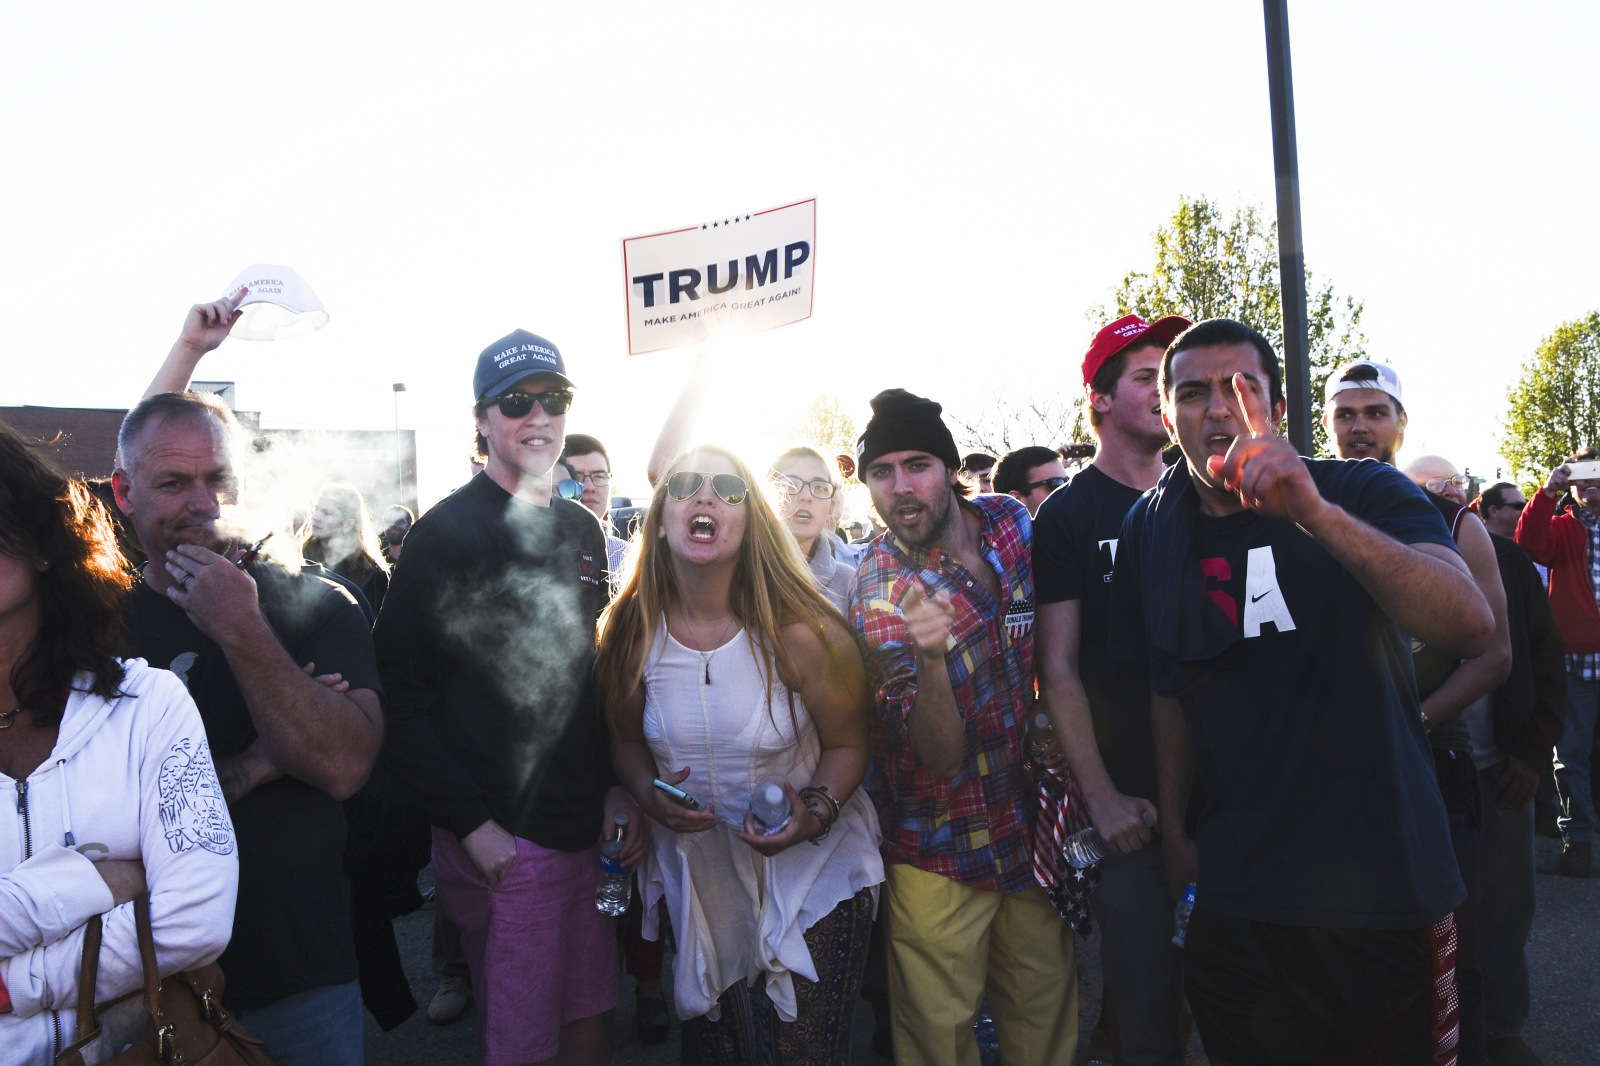 Cambridge- Trump supporters at a rally on Maryland's Eastern Shore assemble prior to an appearance by Trump.